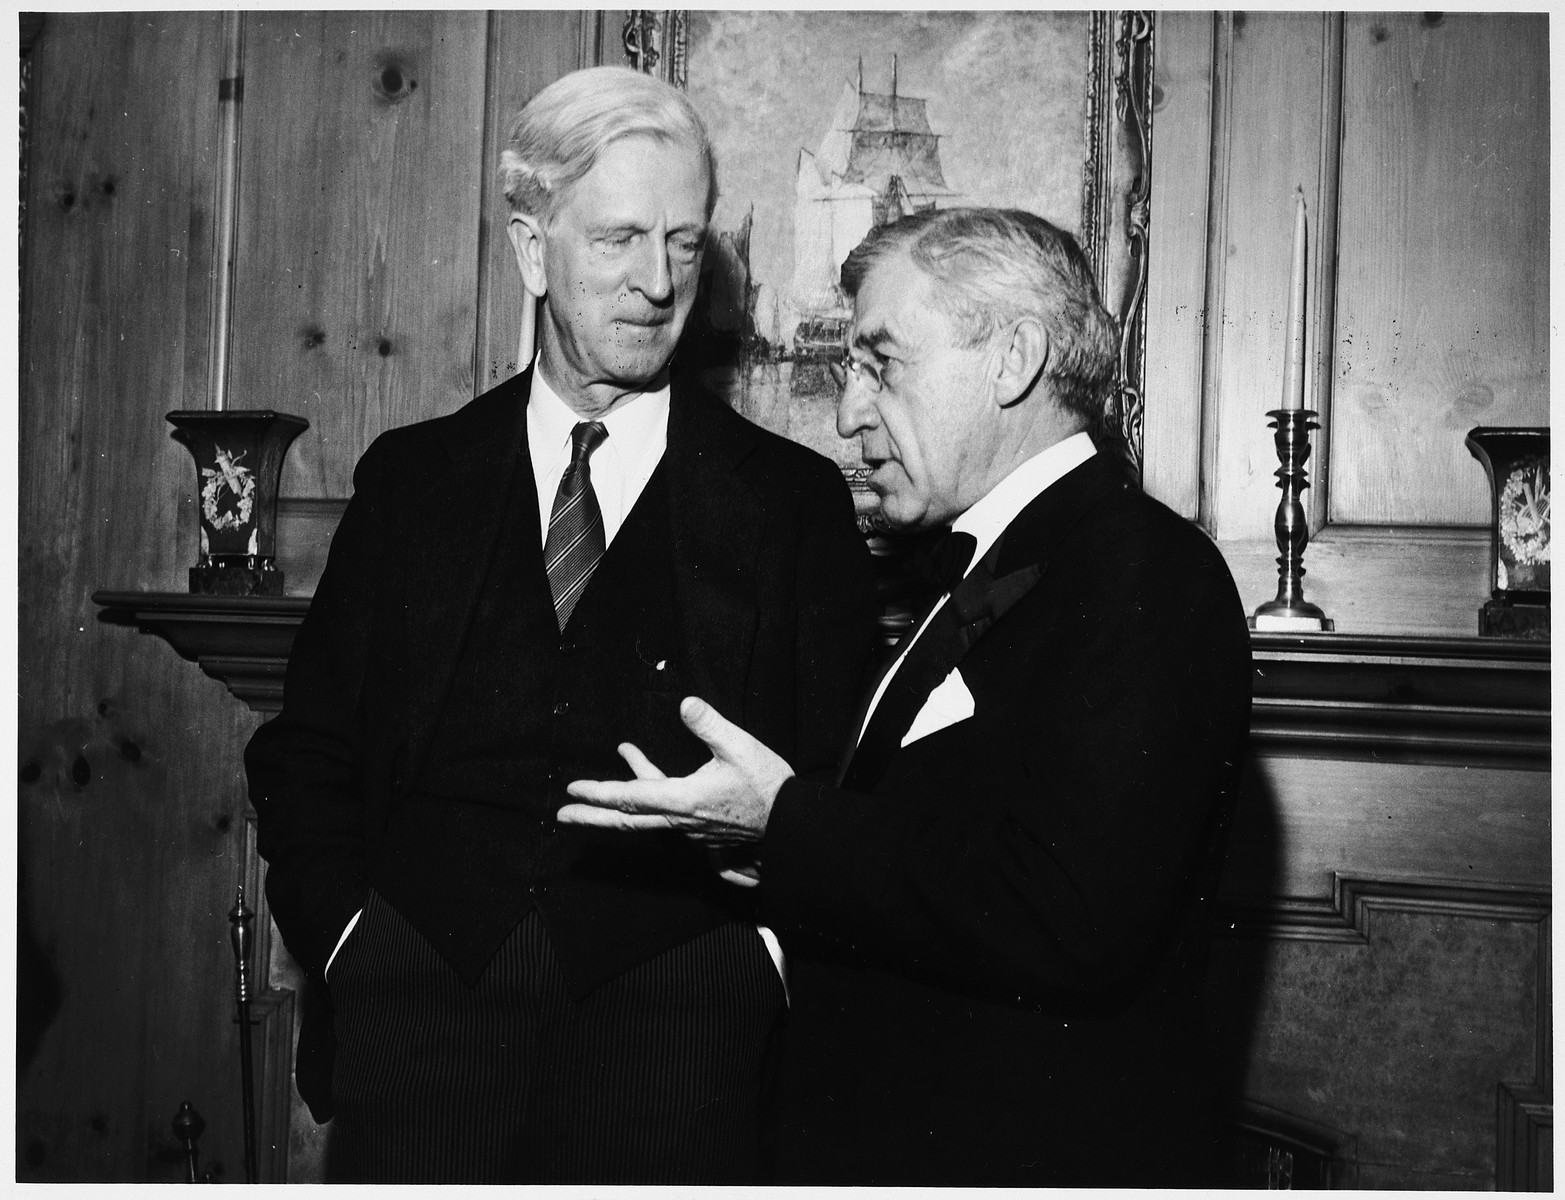 James G. McDonald, a member of the Anglo-American Committee of Inquiry on Palestine, converses with a New York State senator.